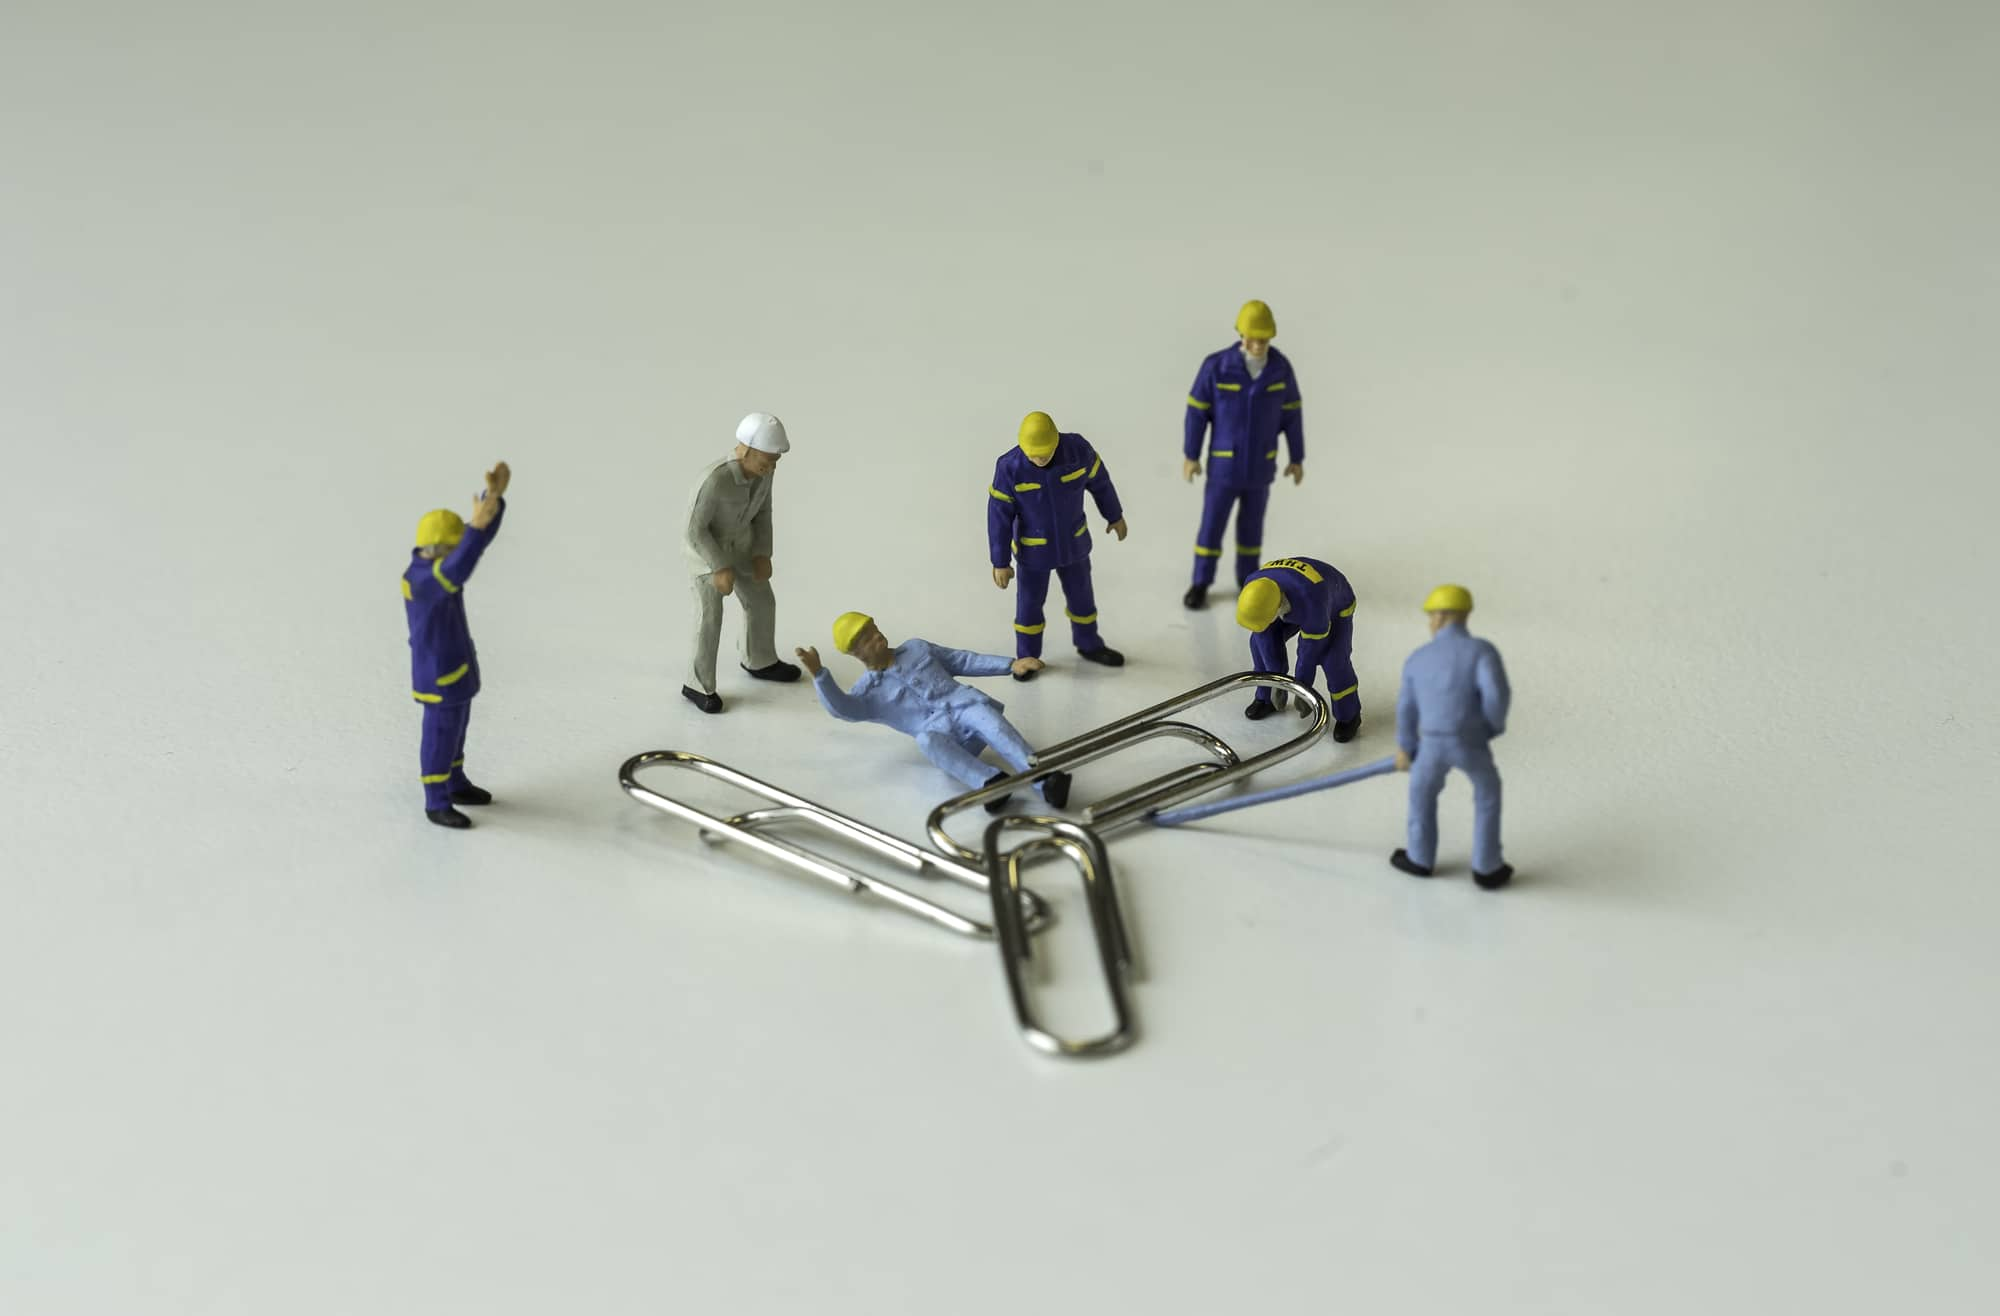 small figures witnessing workplace accident